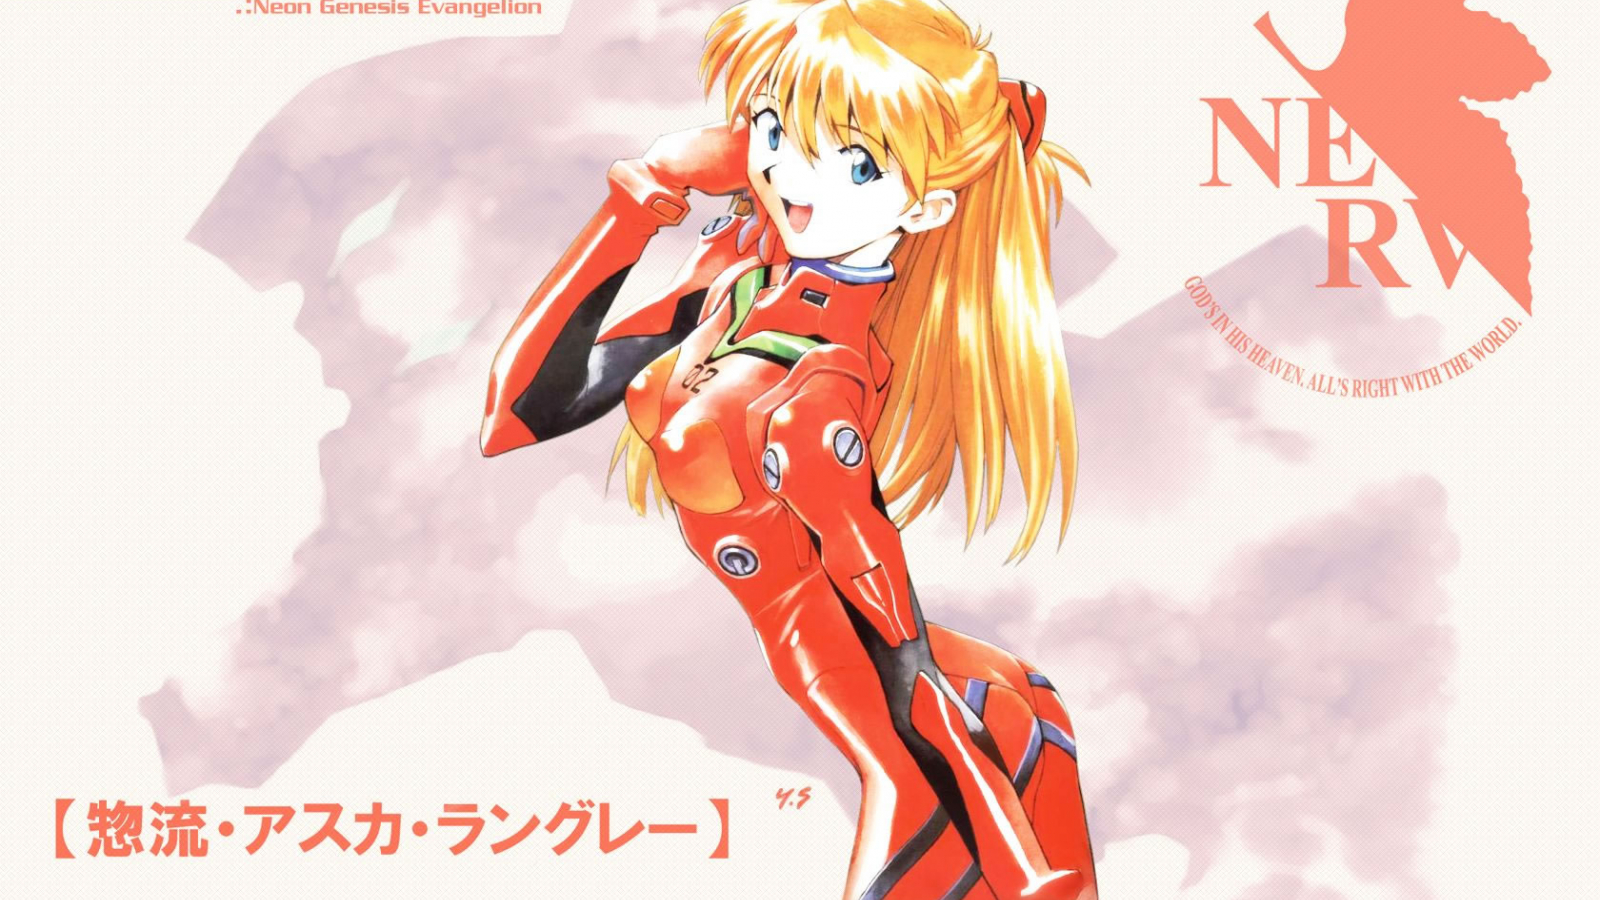 Free Download Sohryu Asuka Langley Anime Wallpaper Image Featuring